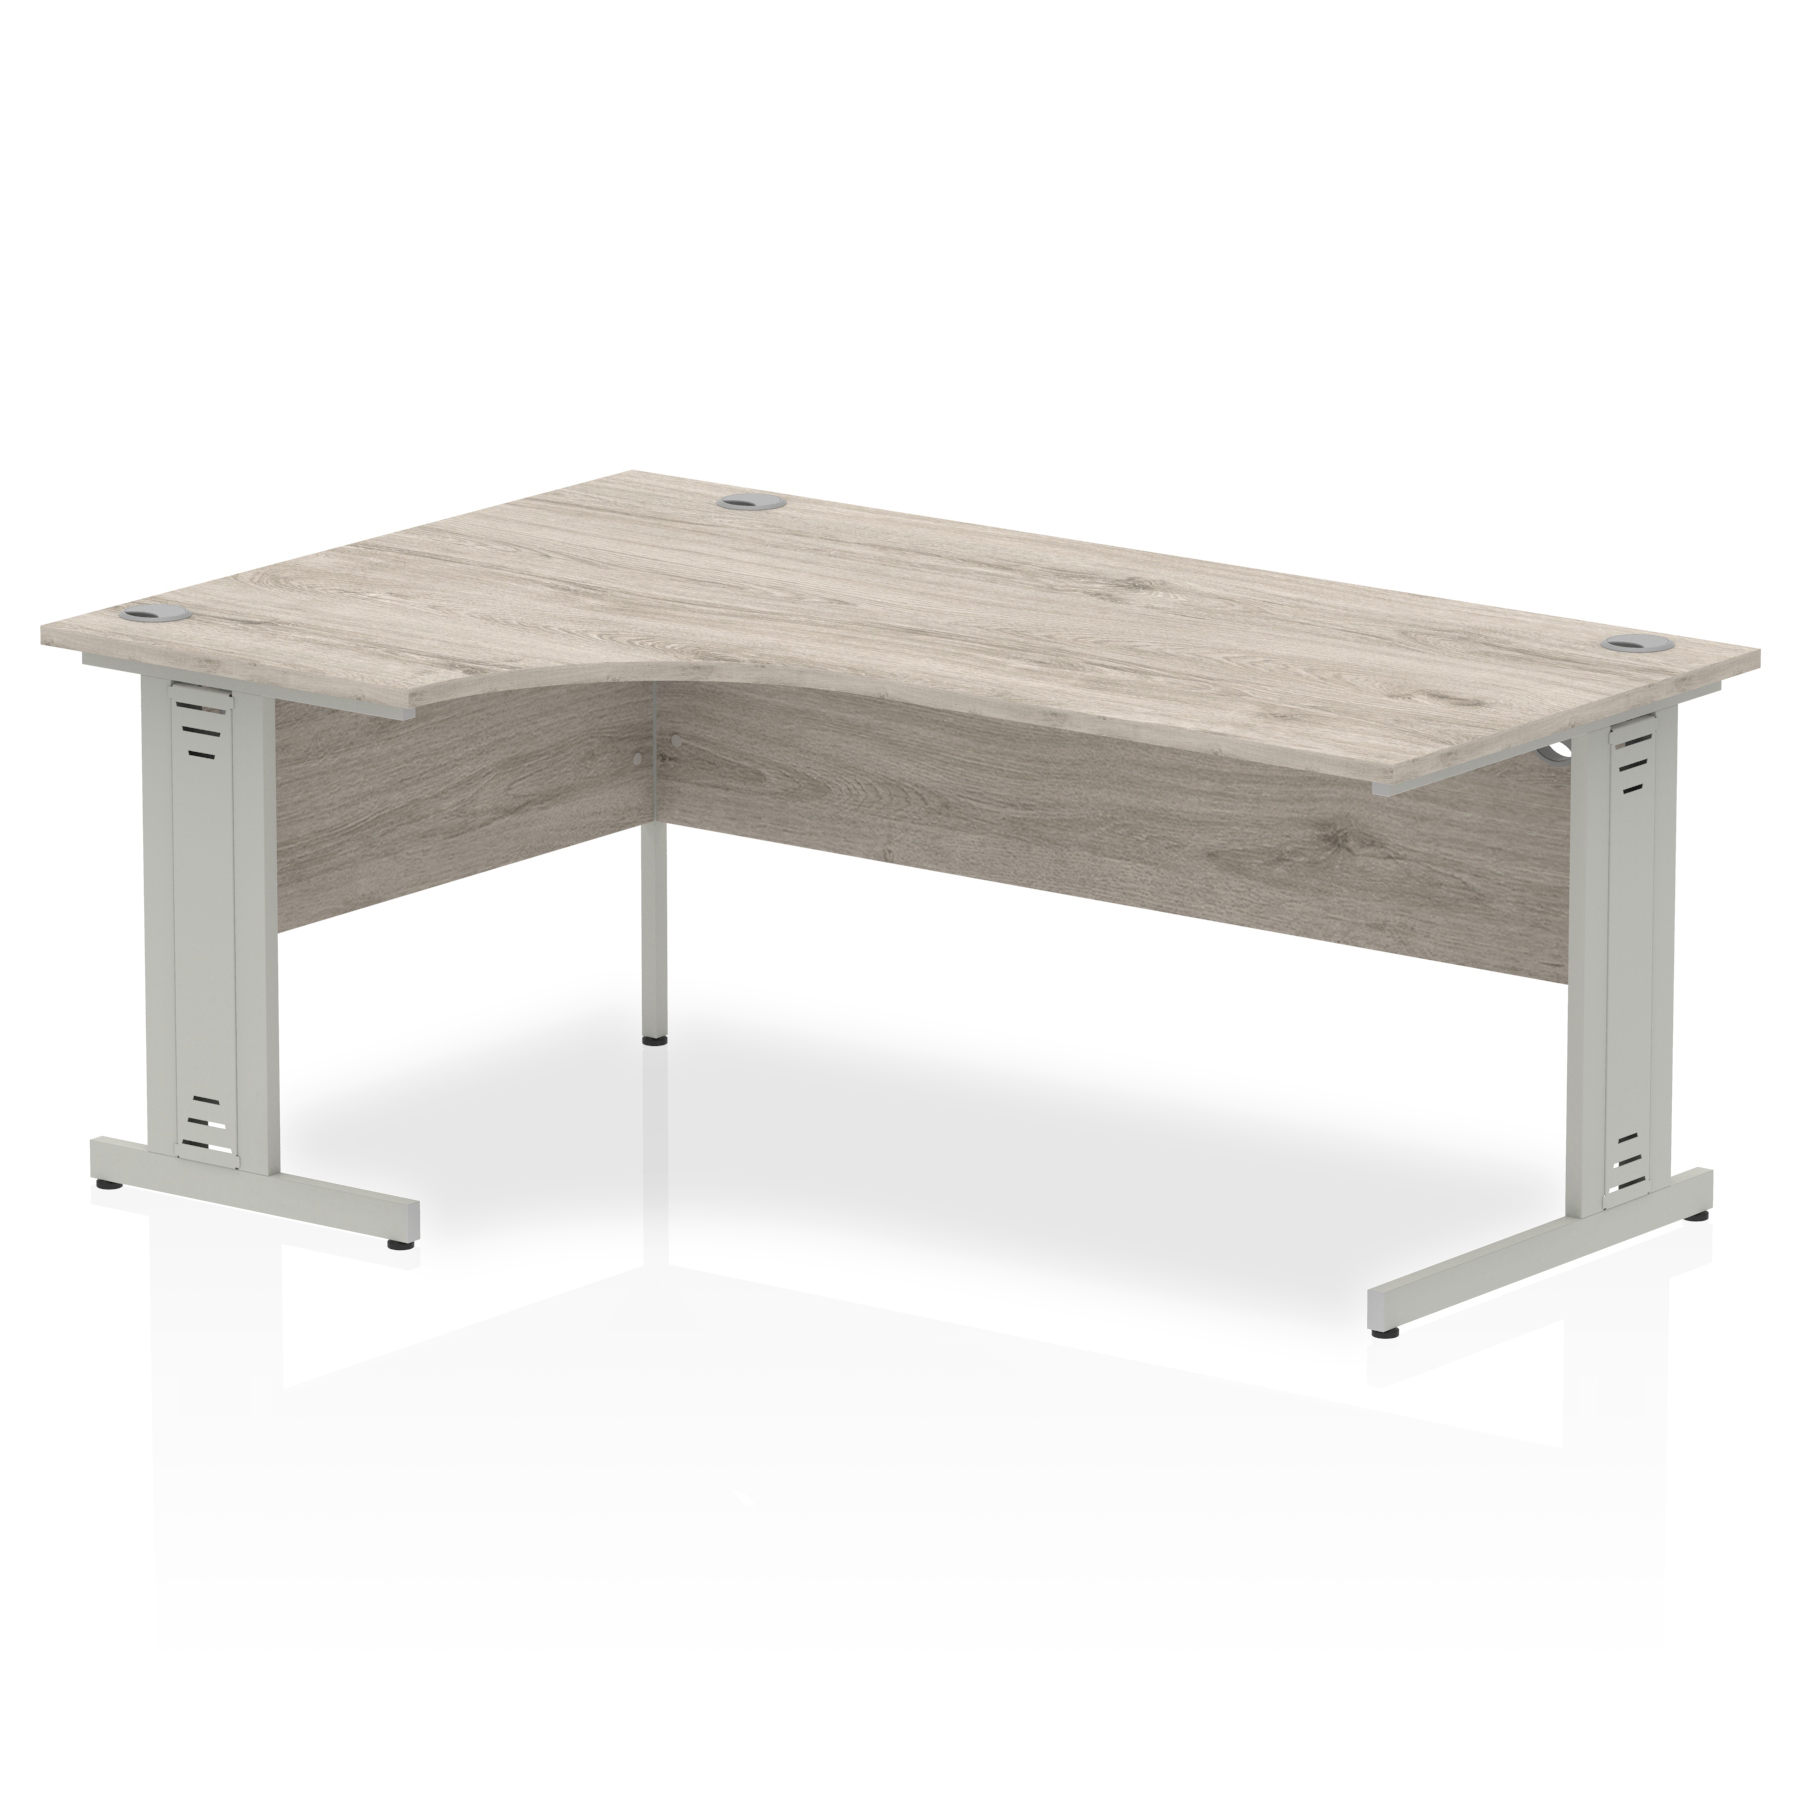 Trexus Radial Desk Left Hand Silver Cable Managed Leg 1800mm Grey Oak Ref I003143